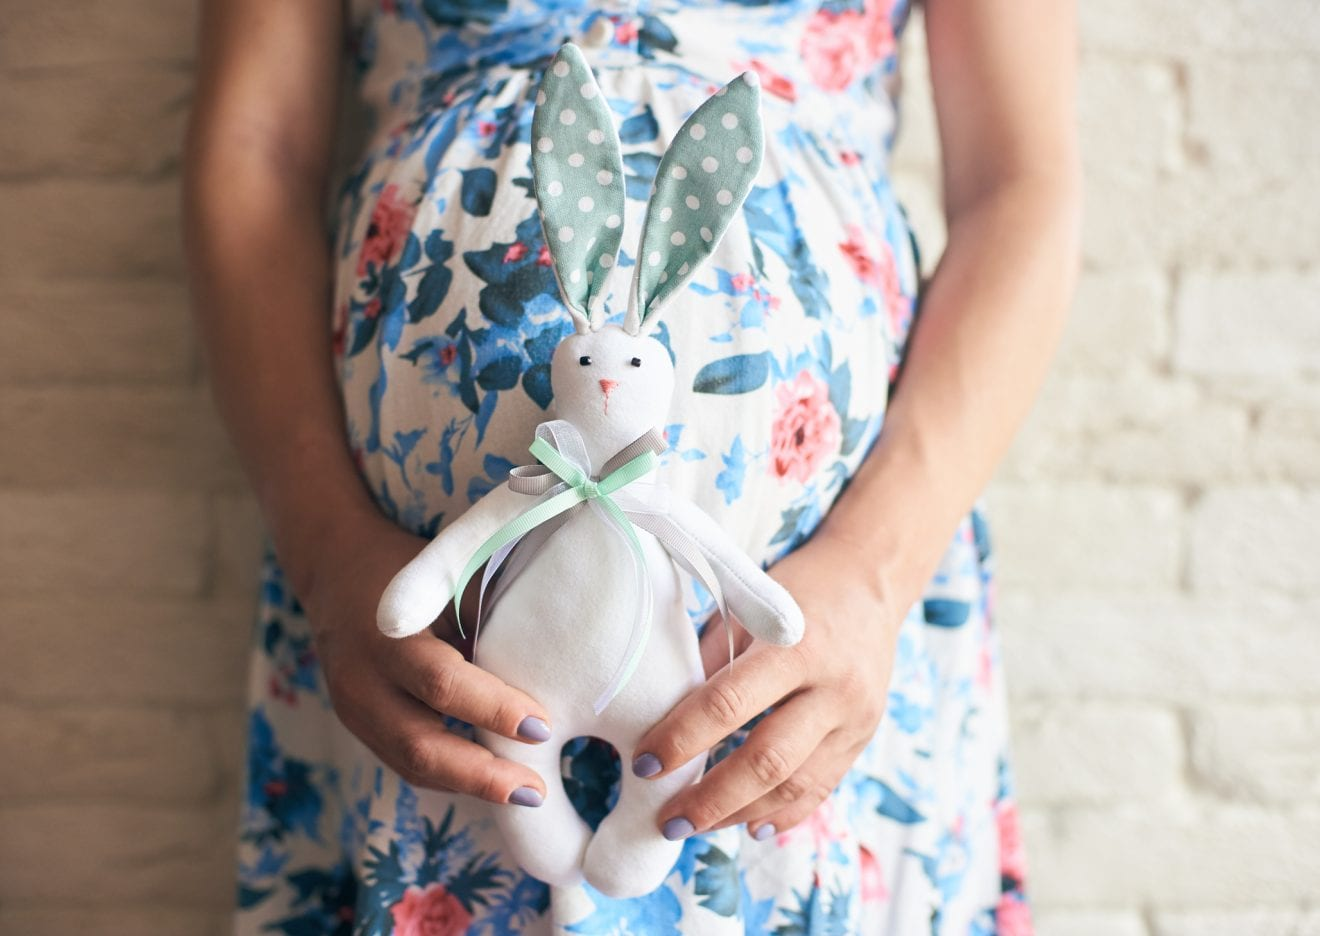 Pregnant lady kepping cute and anticipating little boy